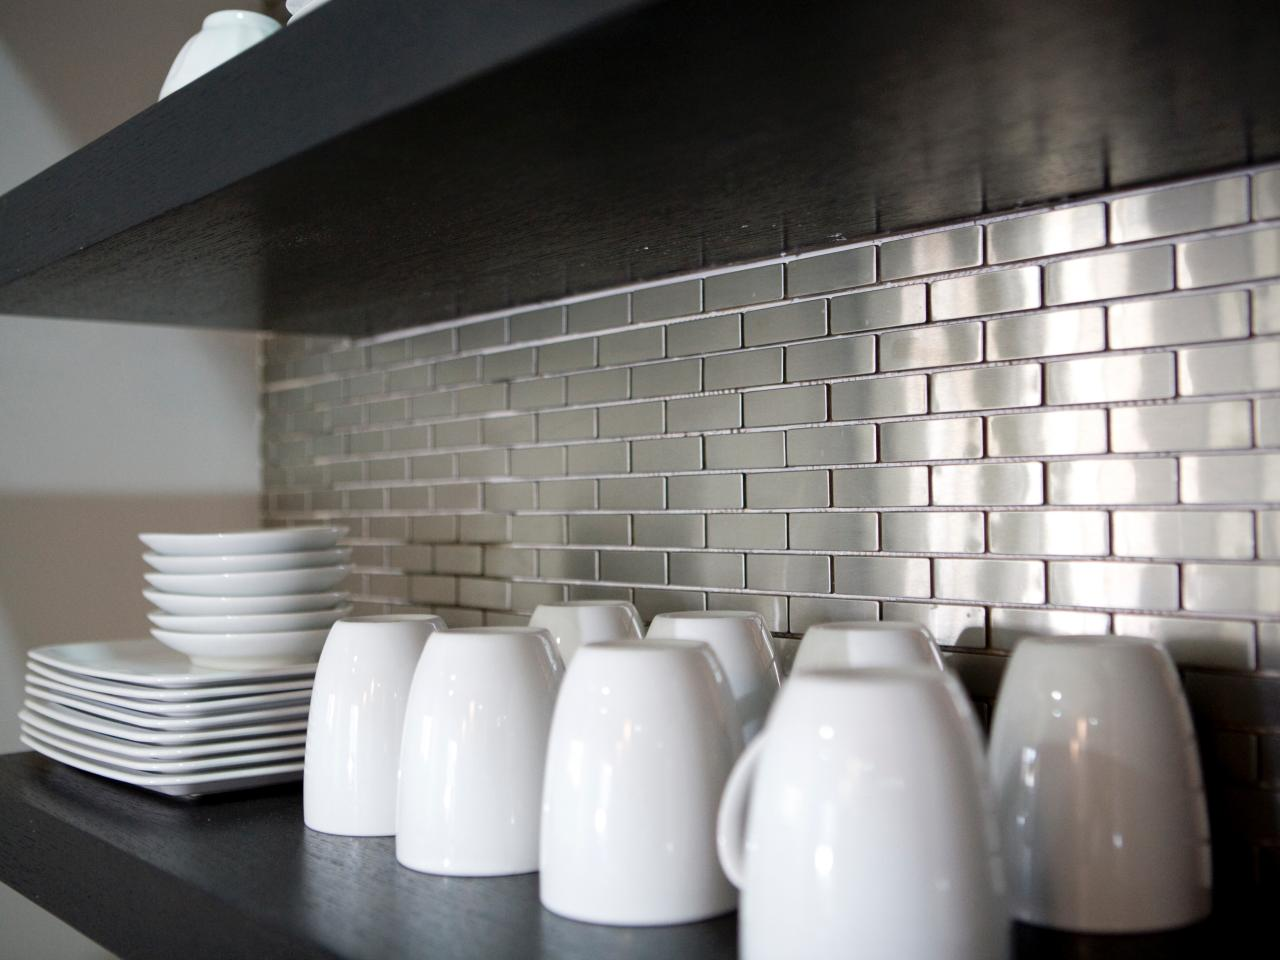 How To Choose The Best Backsplash To Complete The Look Of Your New Kitchen